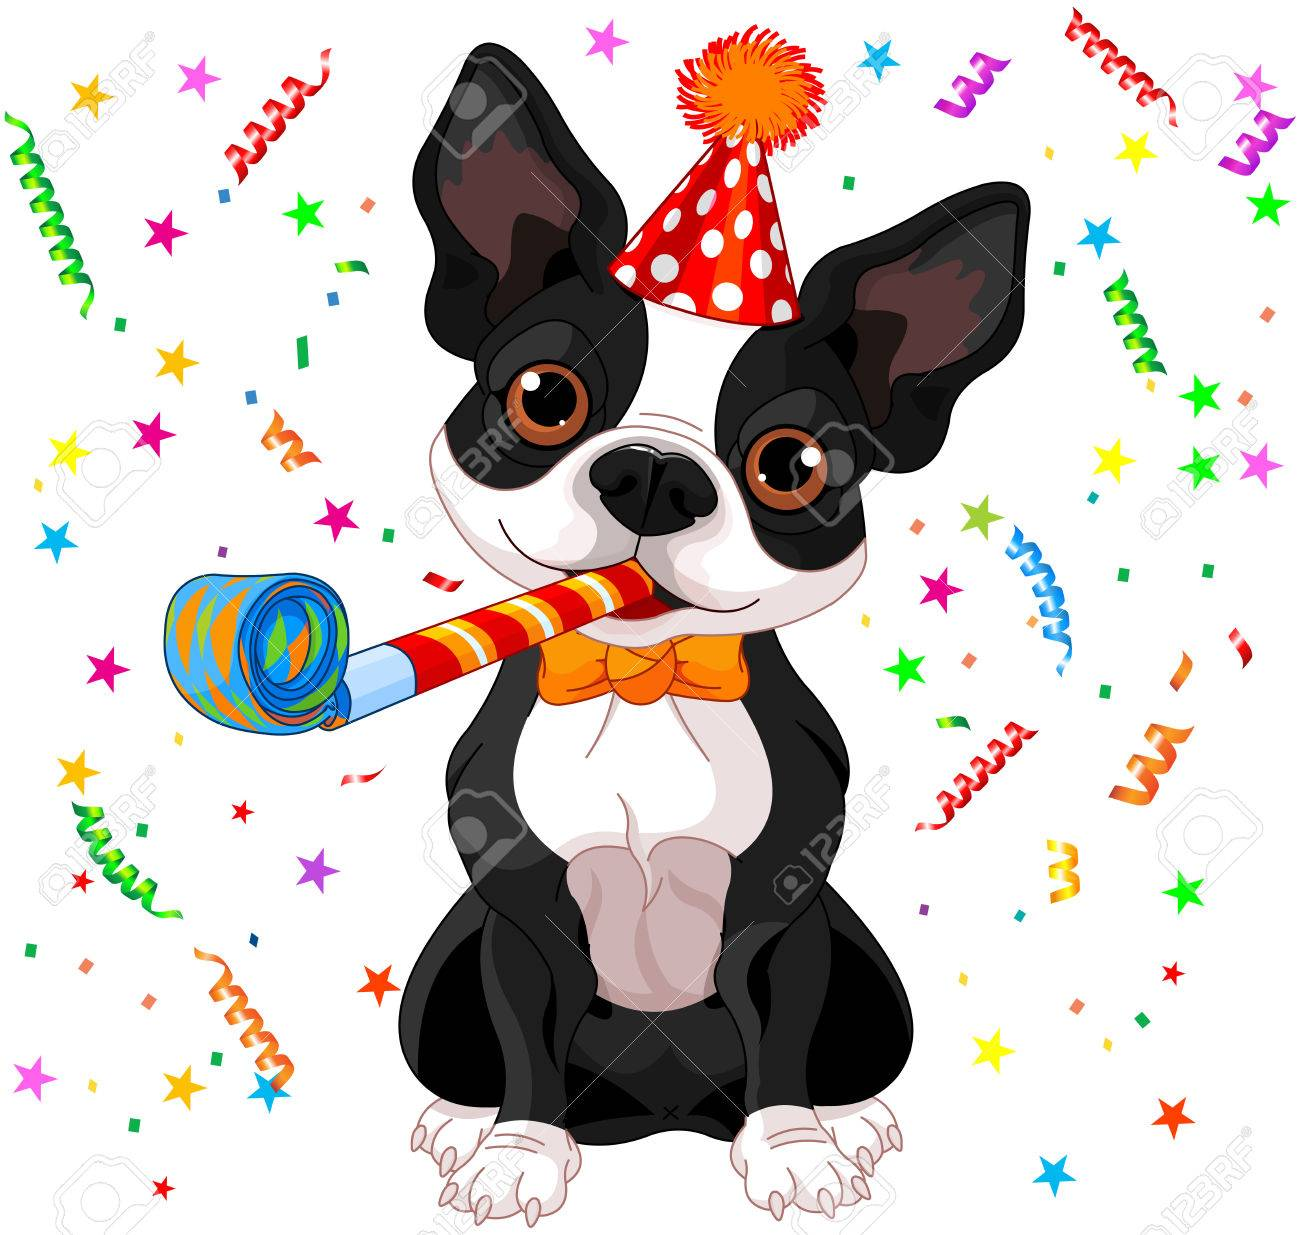 -  Séparation: apprentissage solitude 35588778-illustration-of-cute-boston-terrier-celebrating